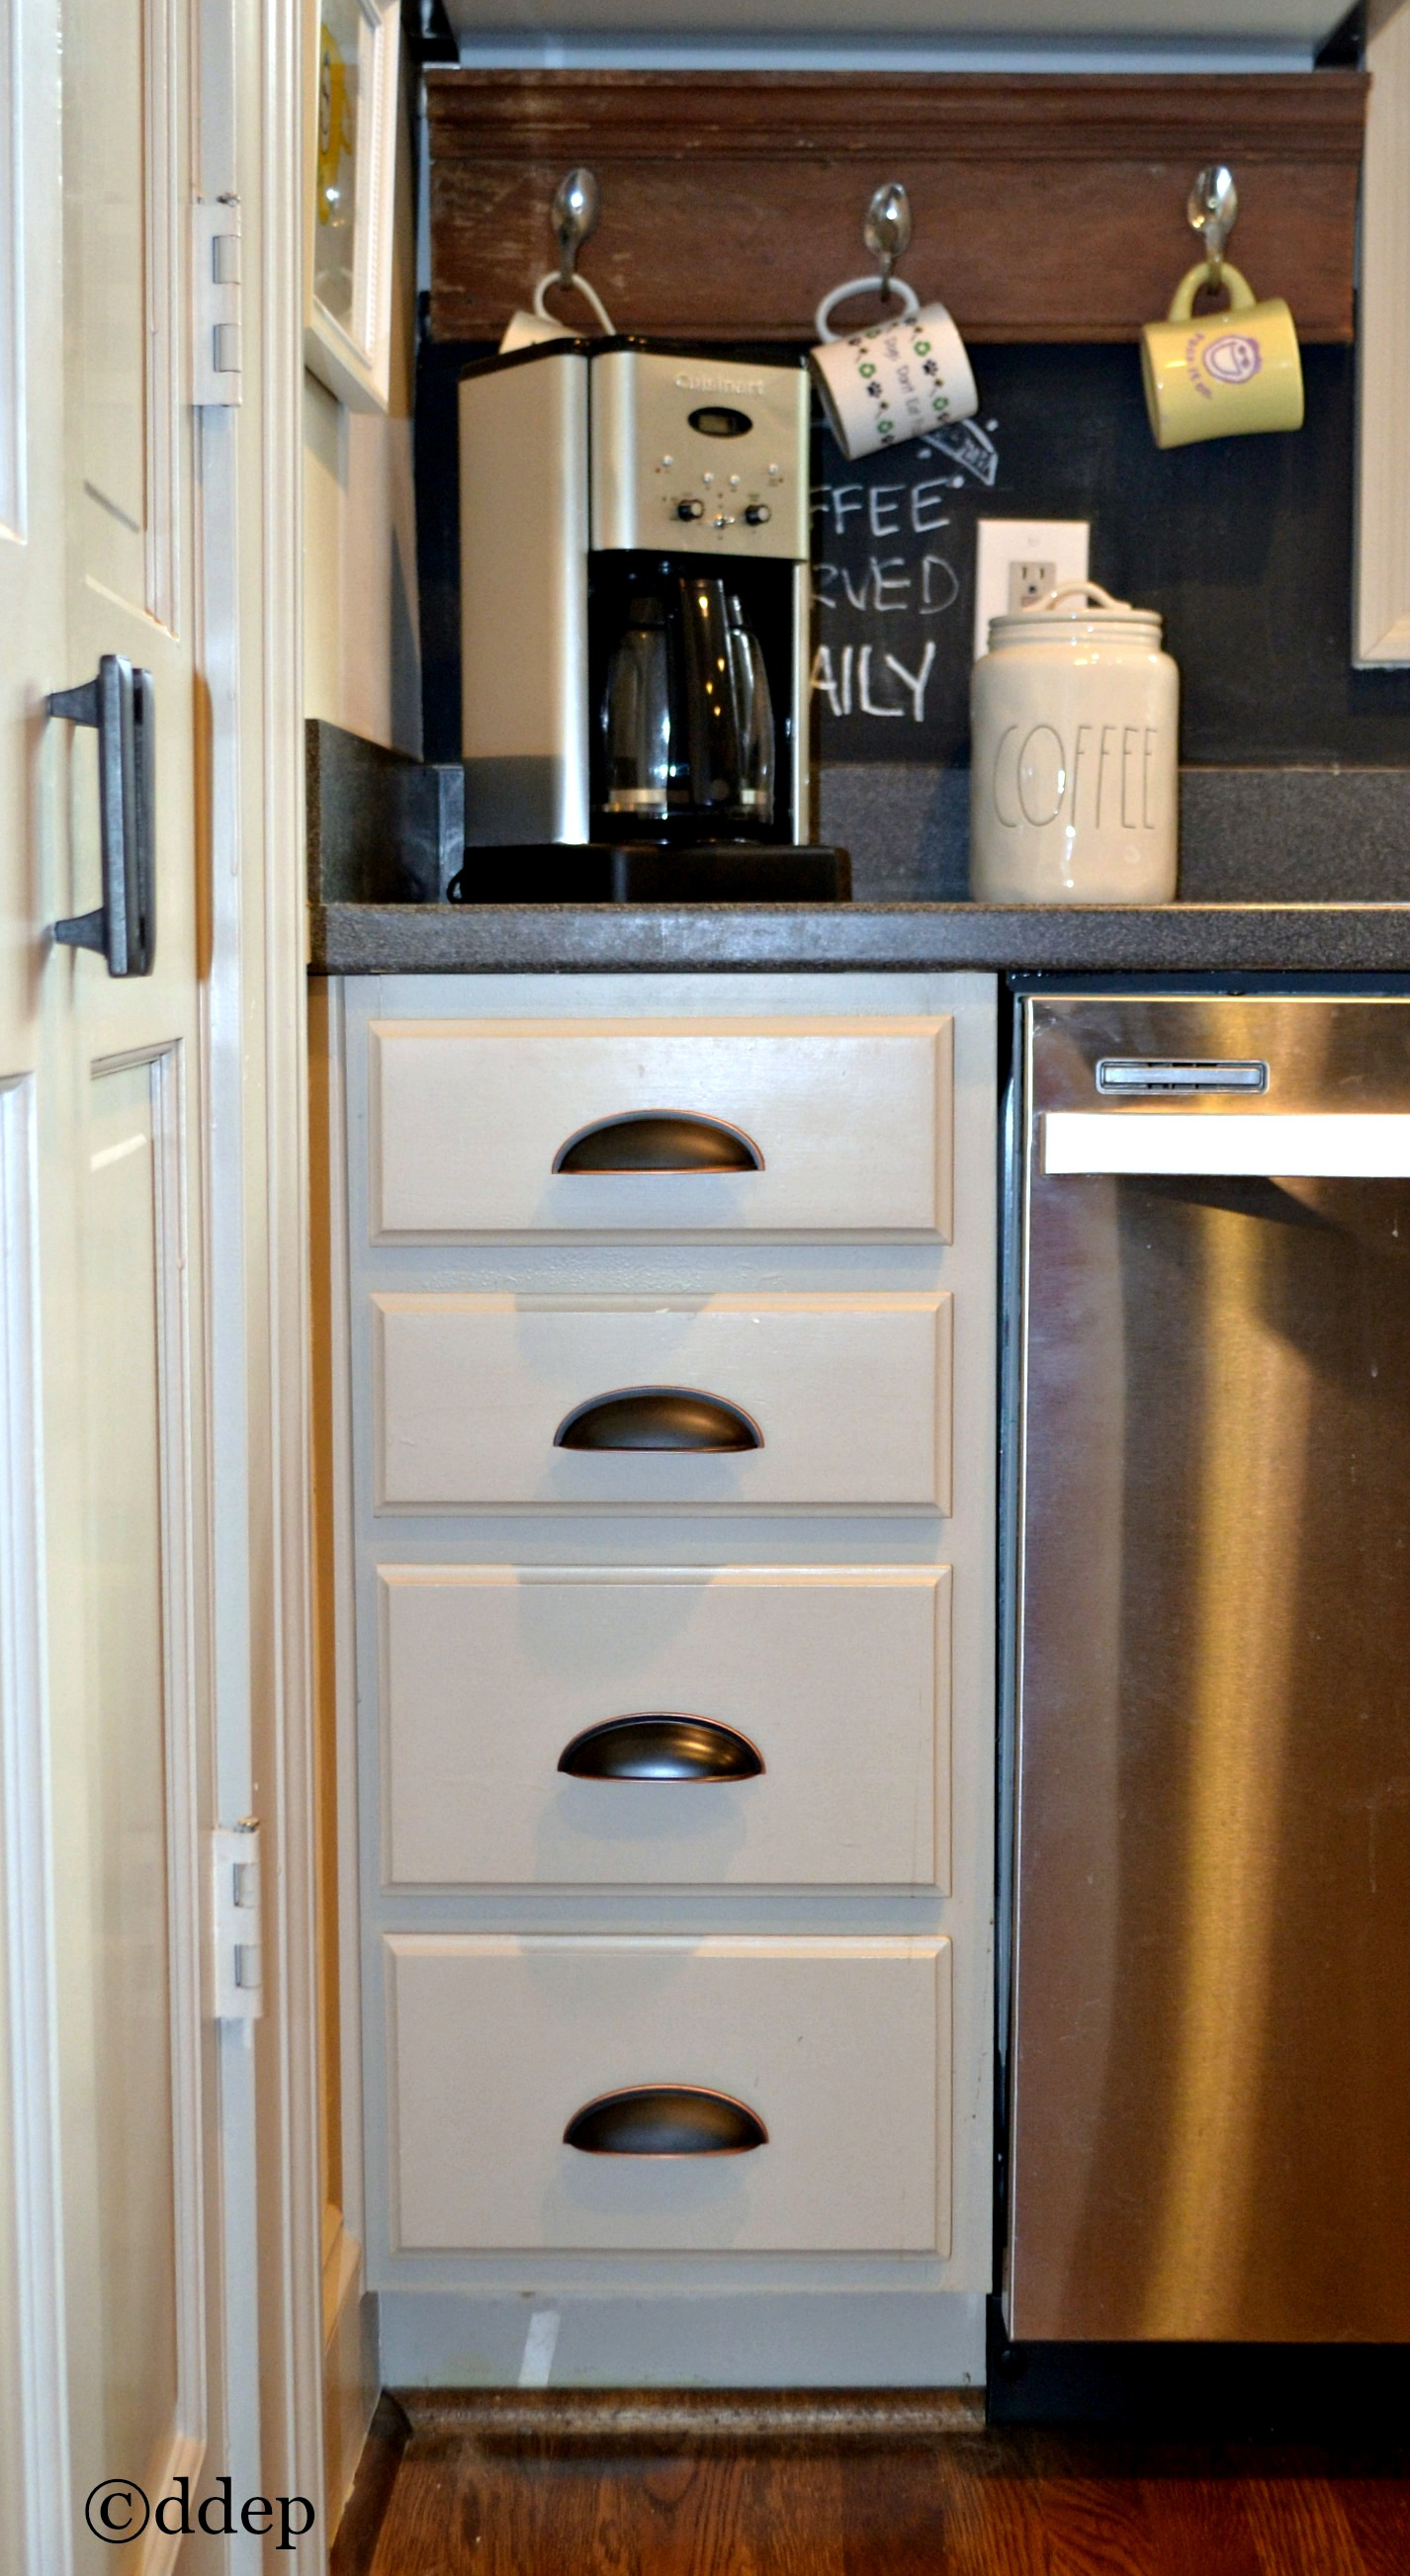 Silverware drawers near the dishwasher make for an organized and efficient kitchen - thediybungalow.com